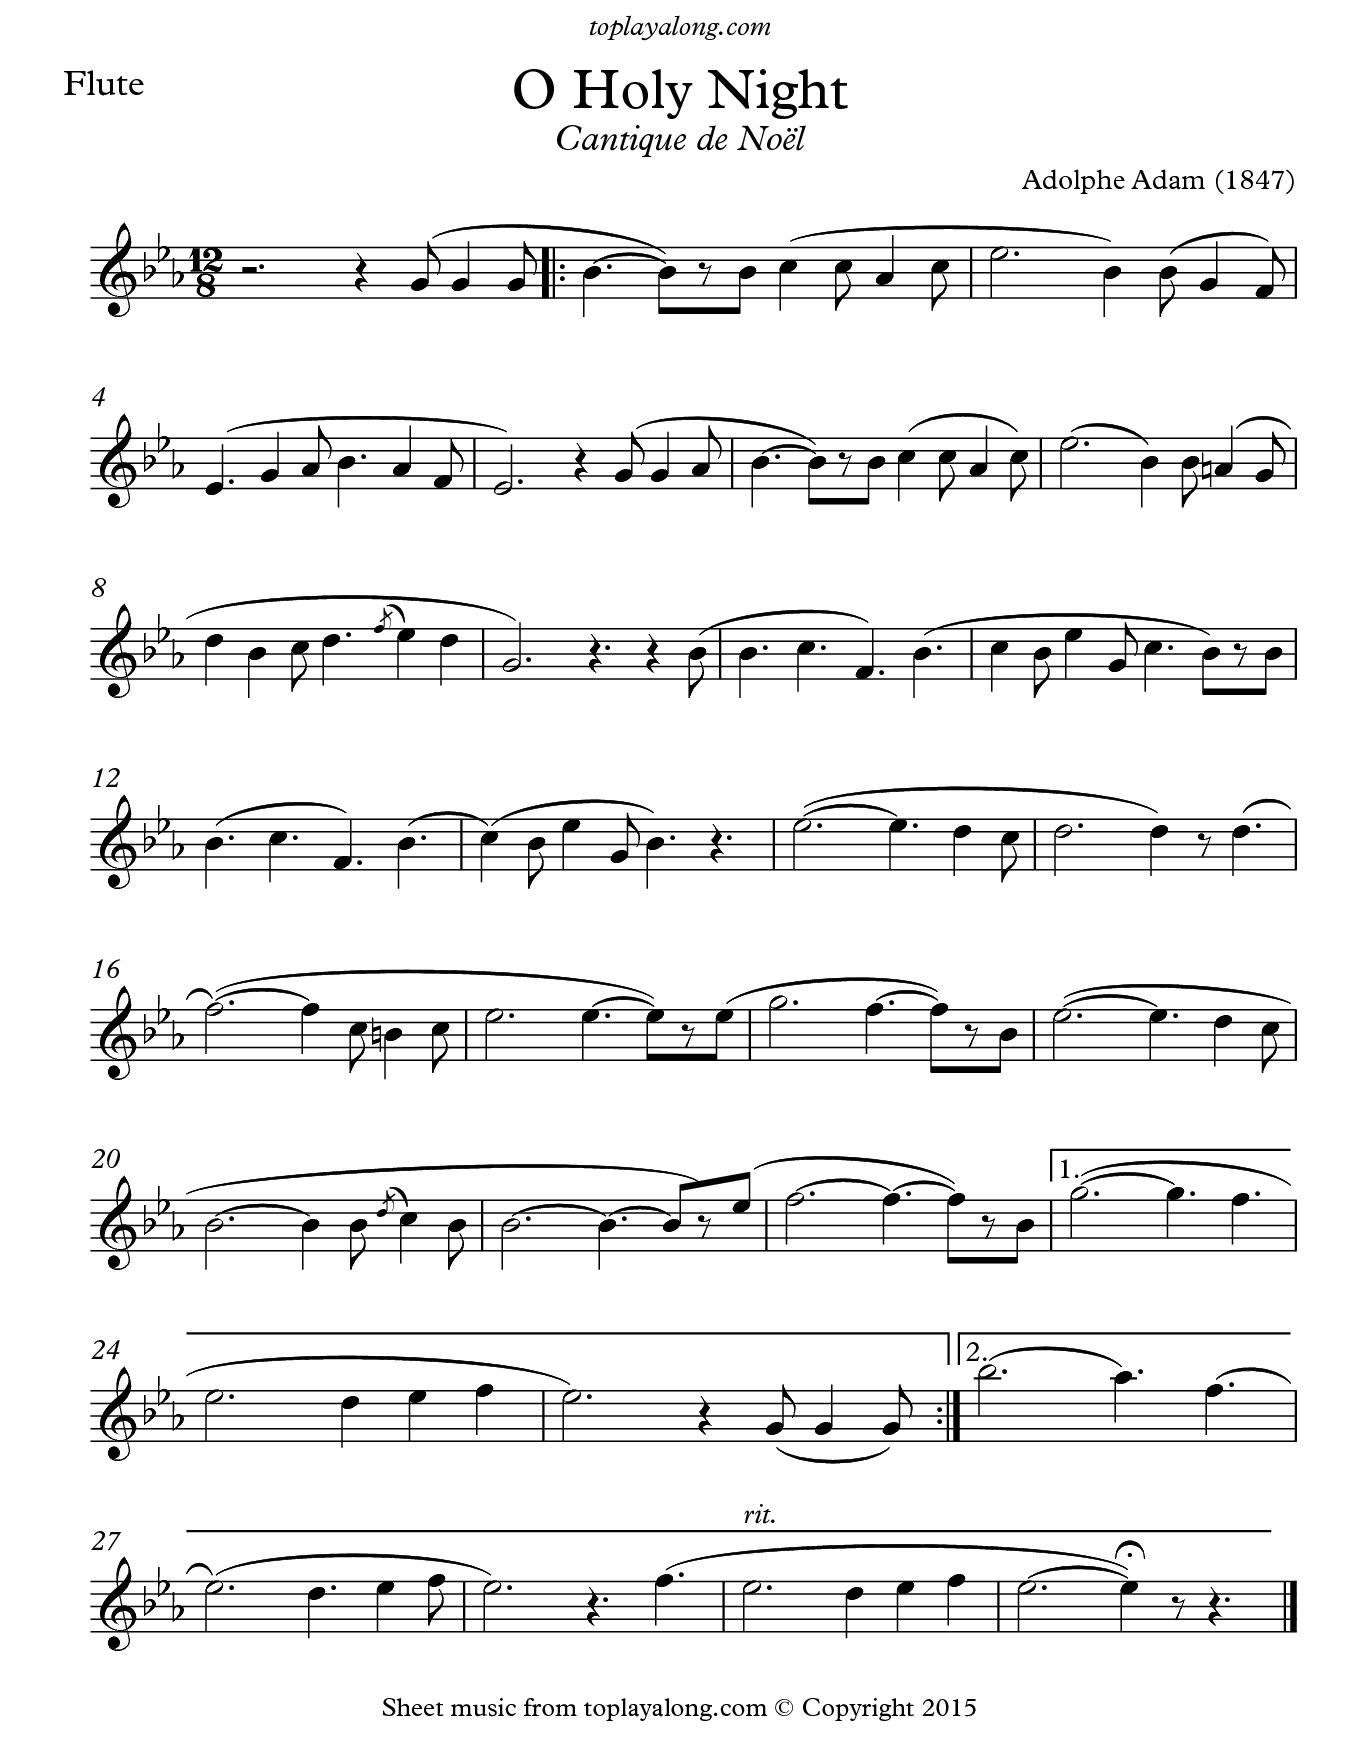 O Holy Night (Cantique de Noel) by Adolphe Adam. Sheet music for Flute, page 1.